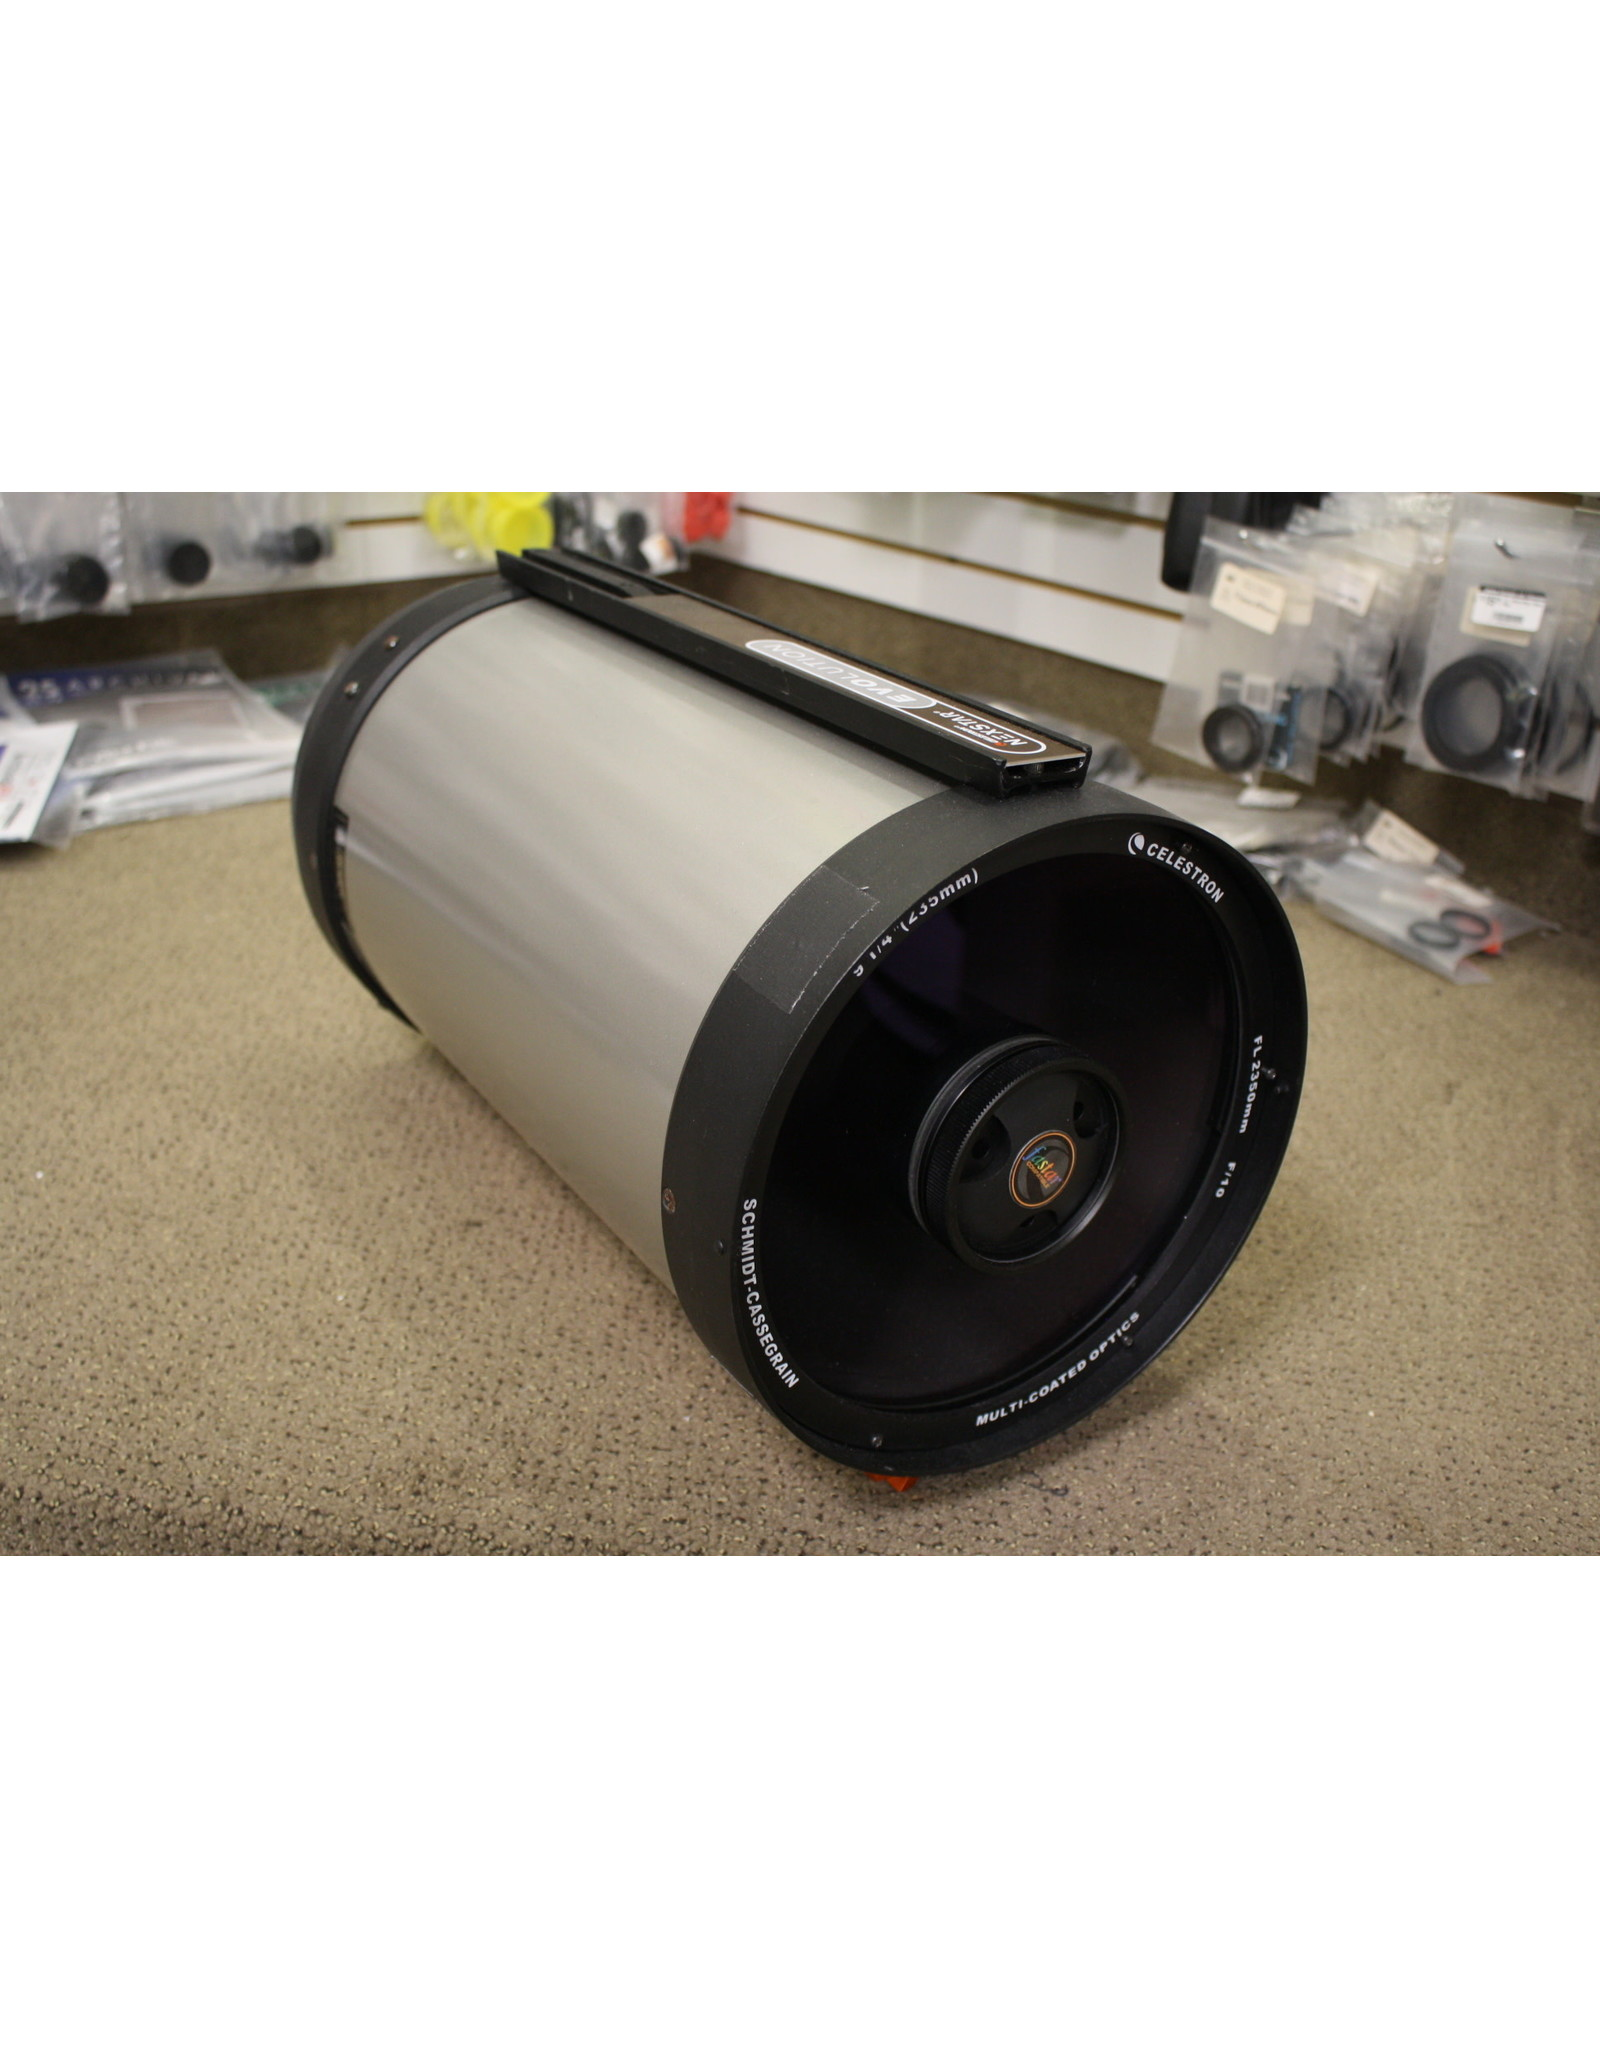 Celestron 9.25 SCT Optical Tube Assembly (Pre-owned)